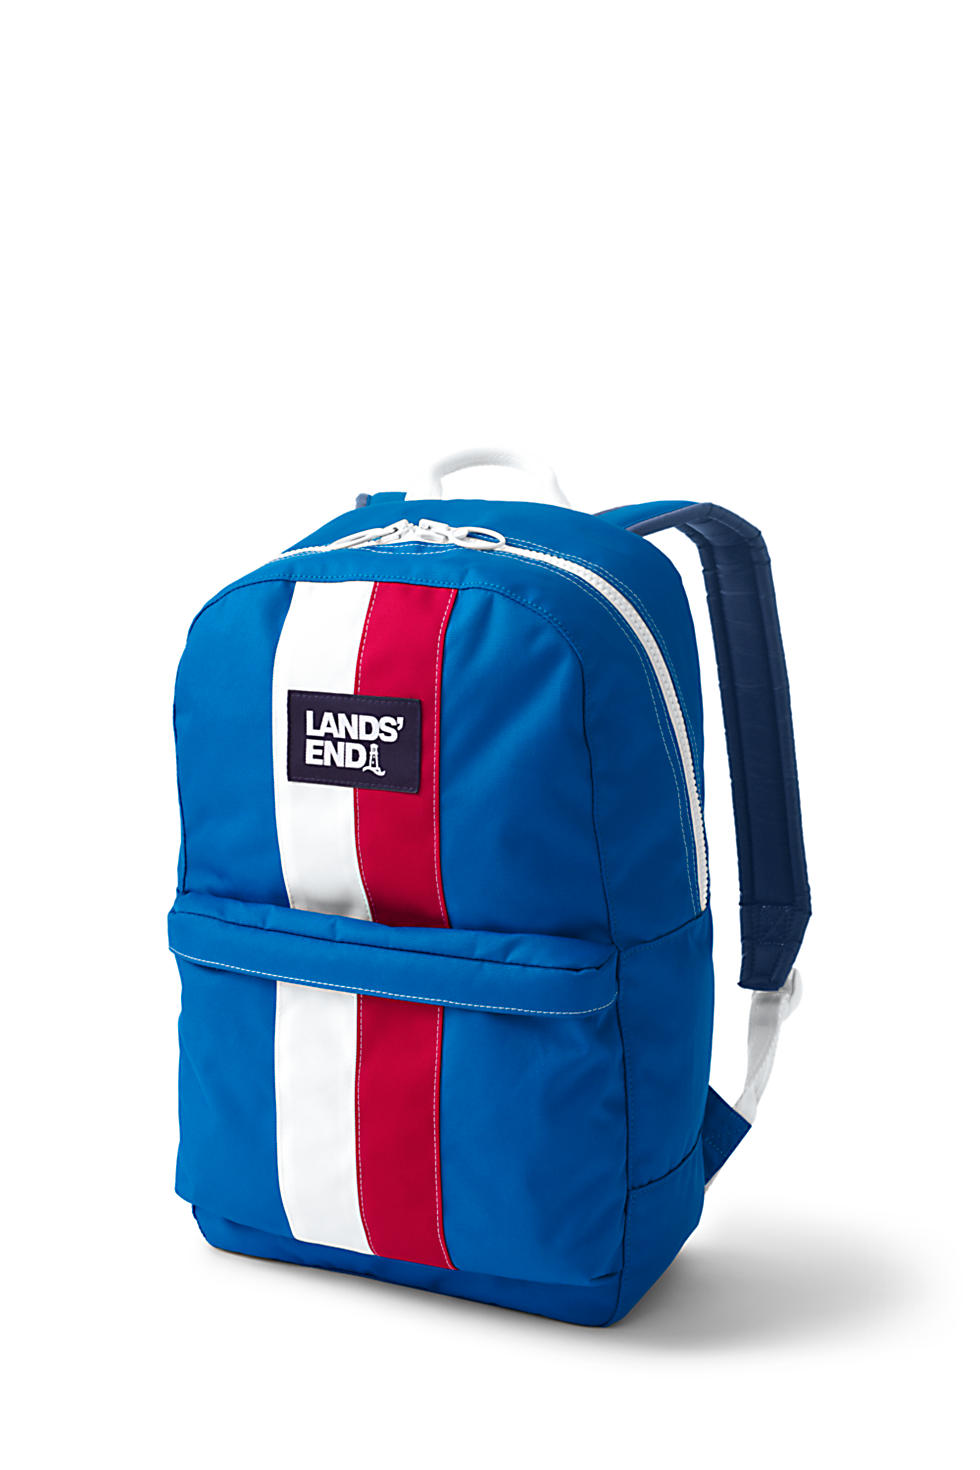 Lands End Seagoing Signal Flag Backpack